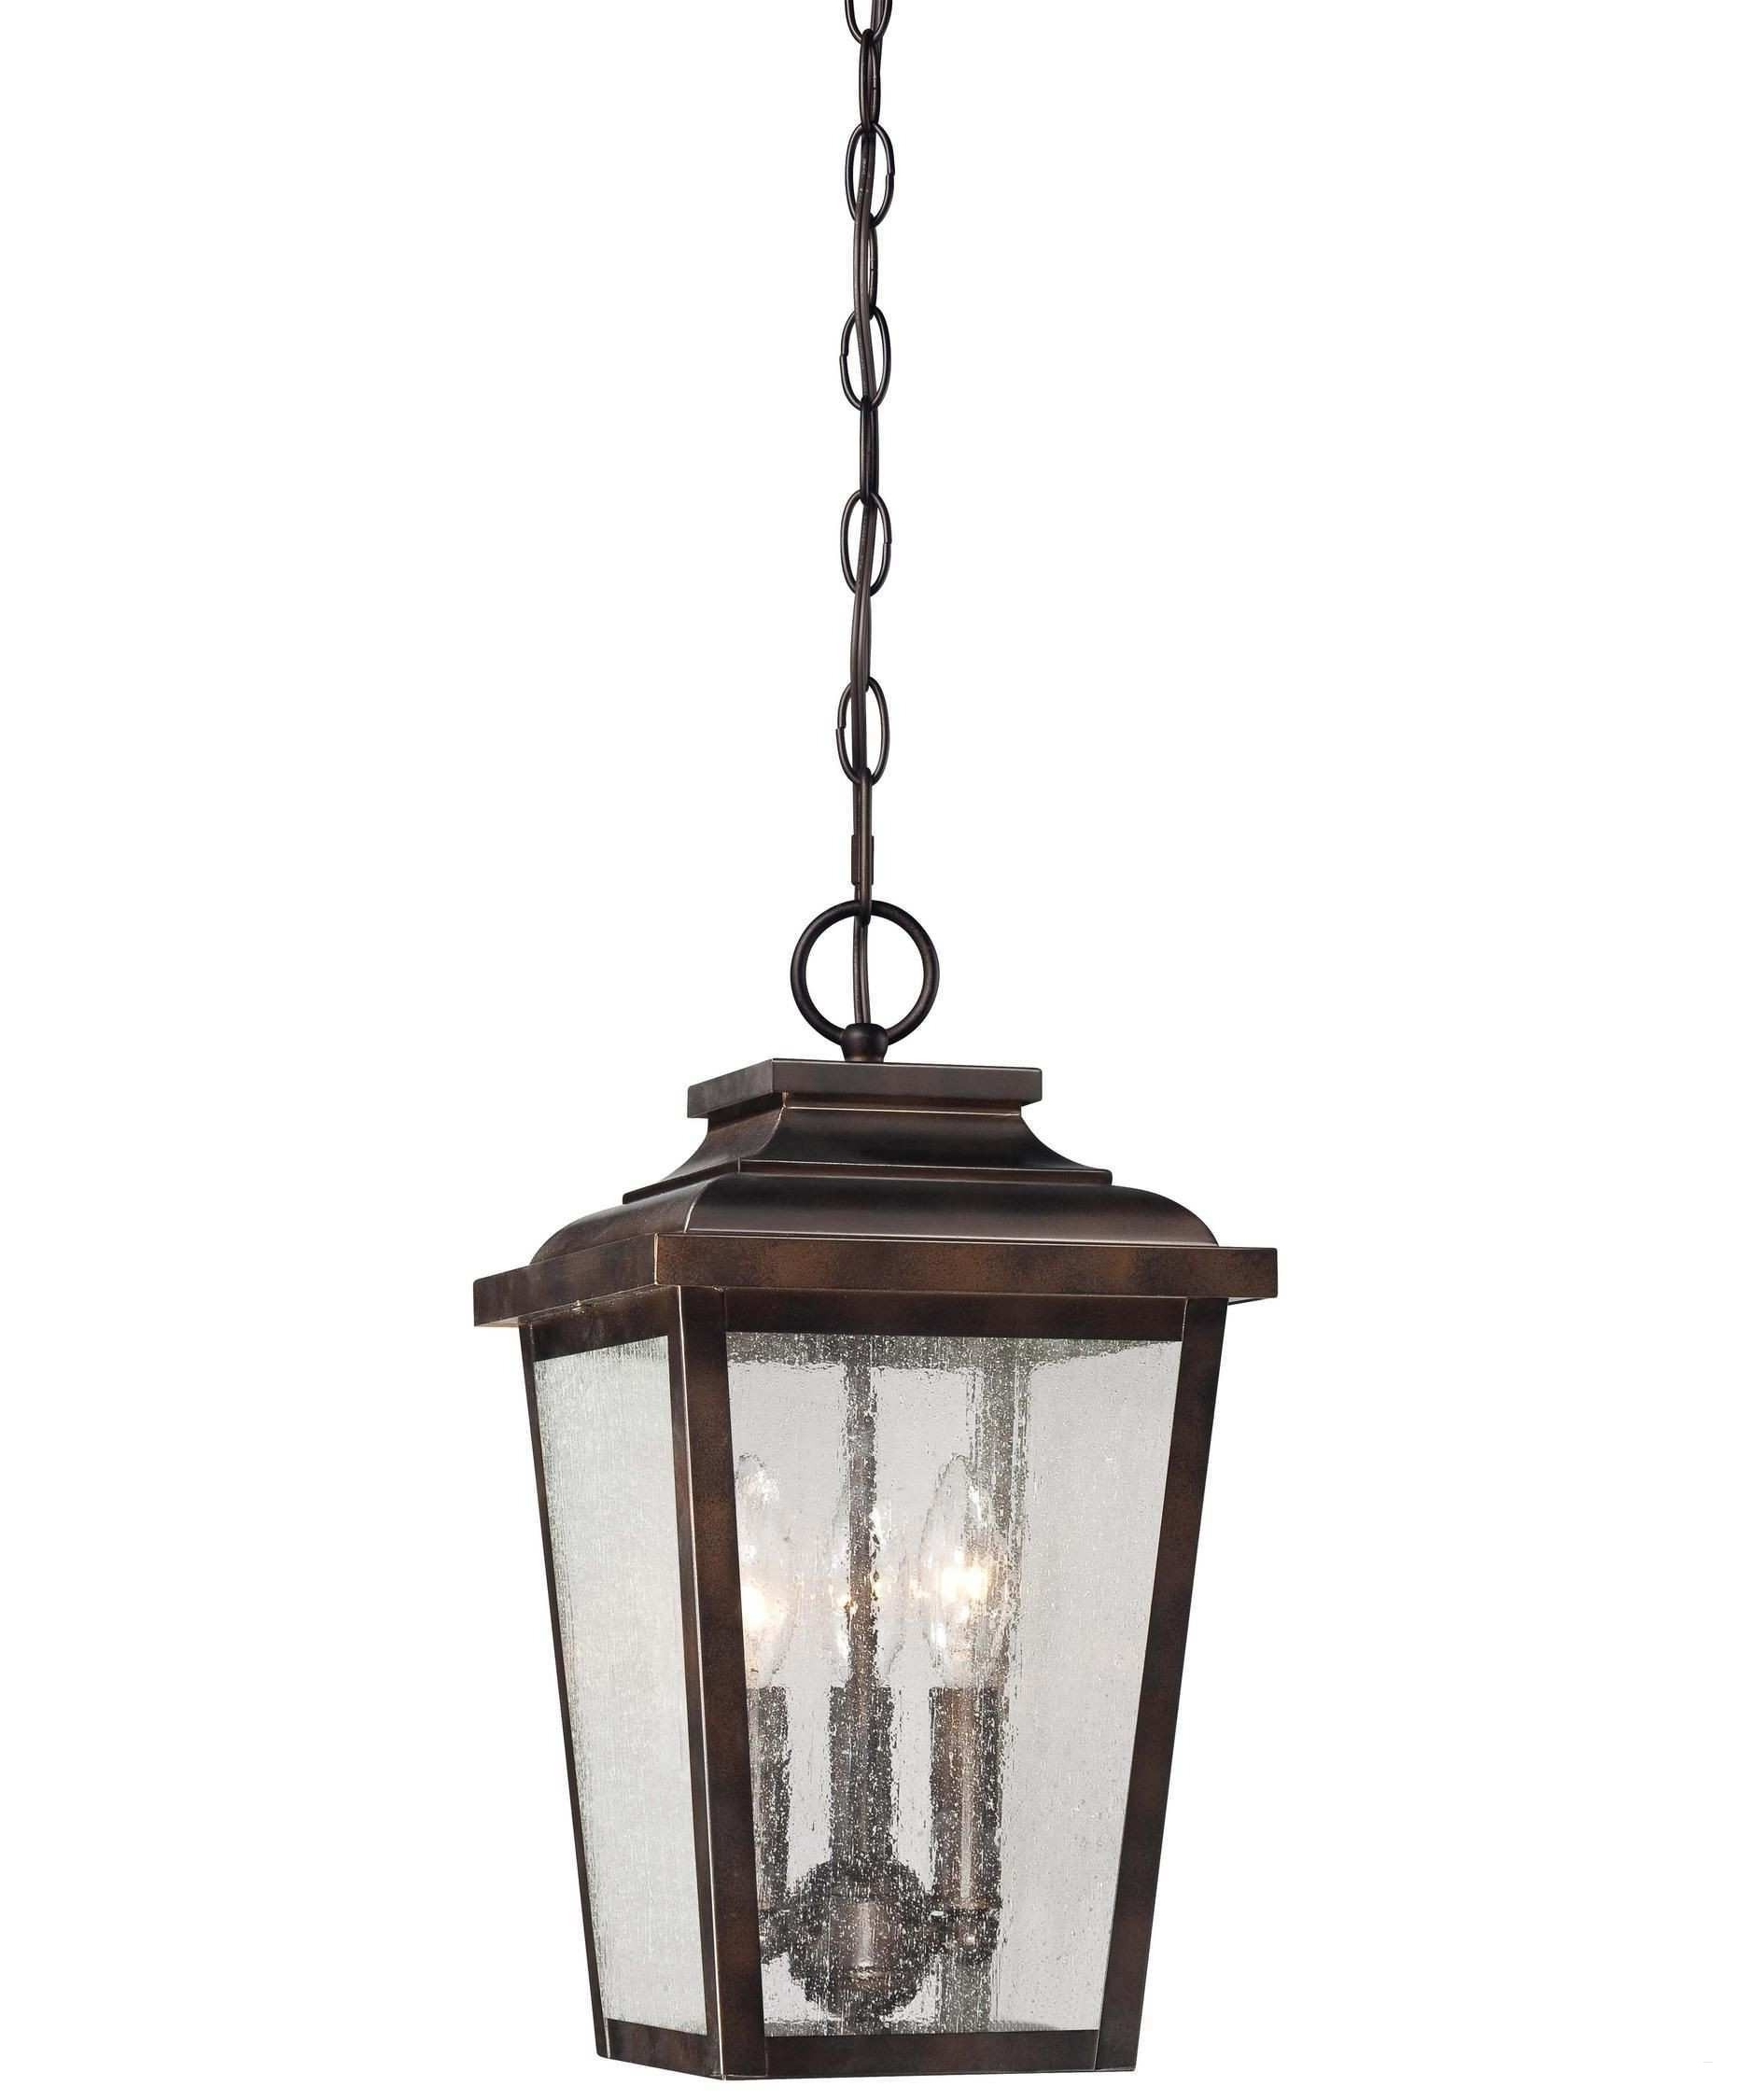 Preferred Outdoor Pendant Lights Best Of Led Pendant Light Fixtures Regarding Outdoor Pendant Lanterns (View 16 of 20)